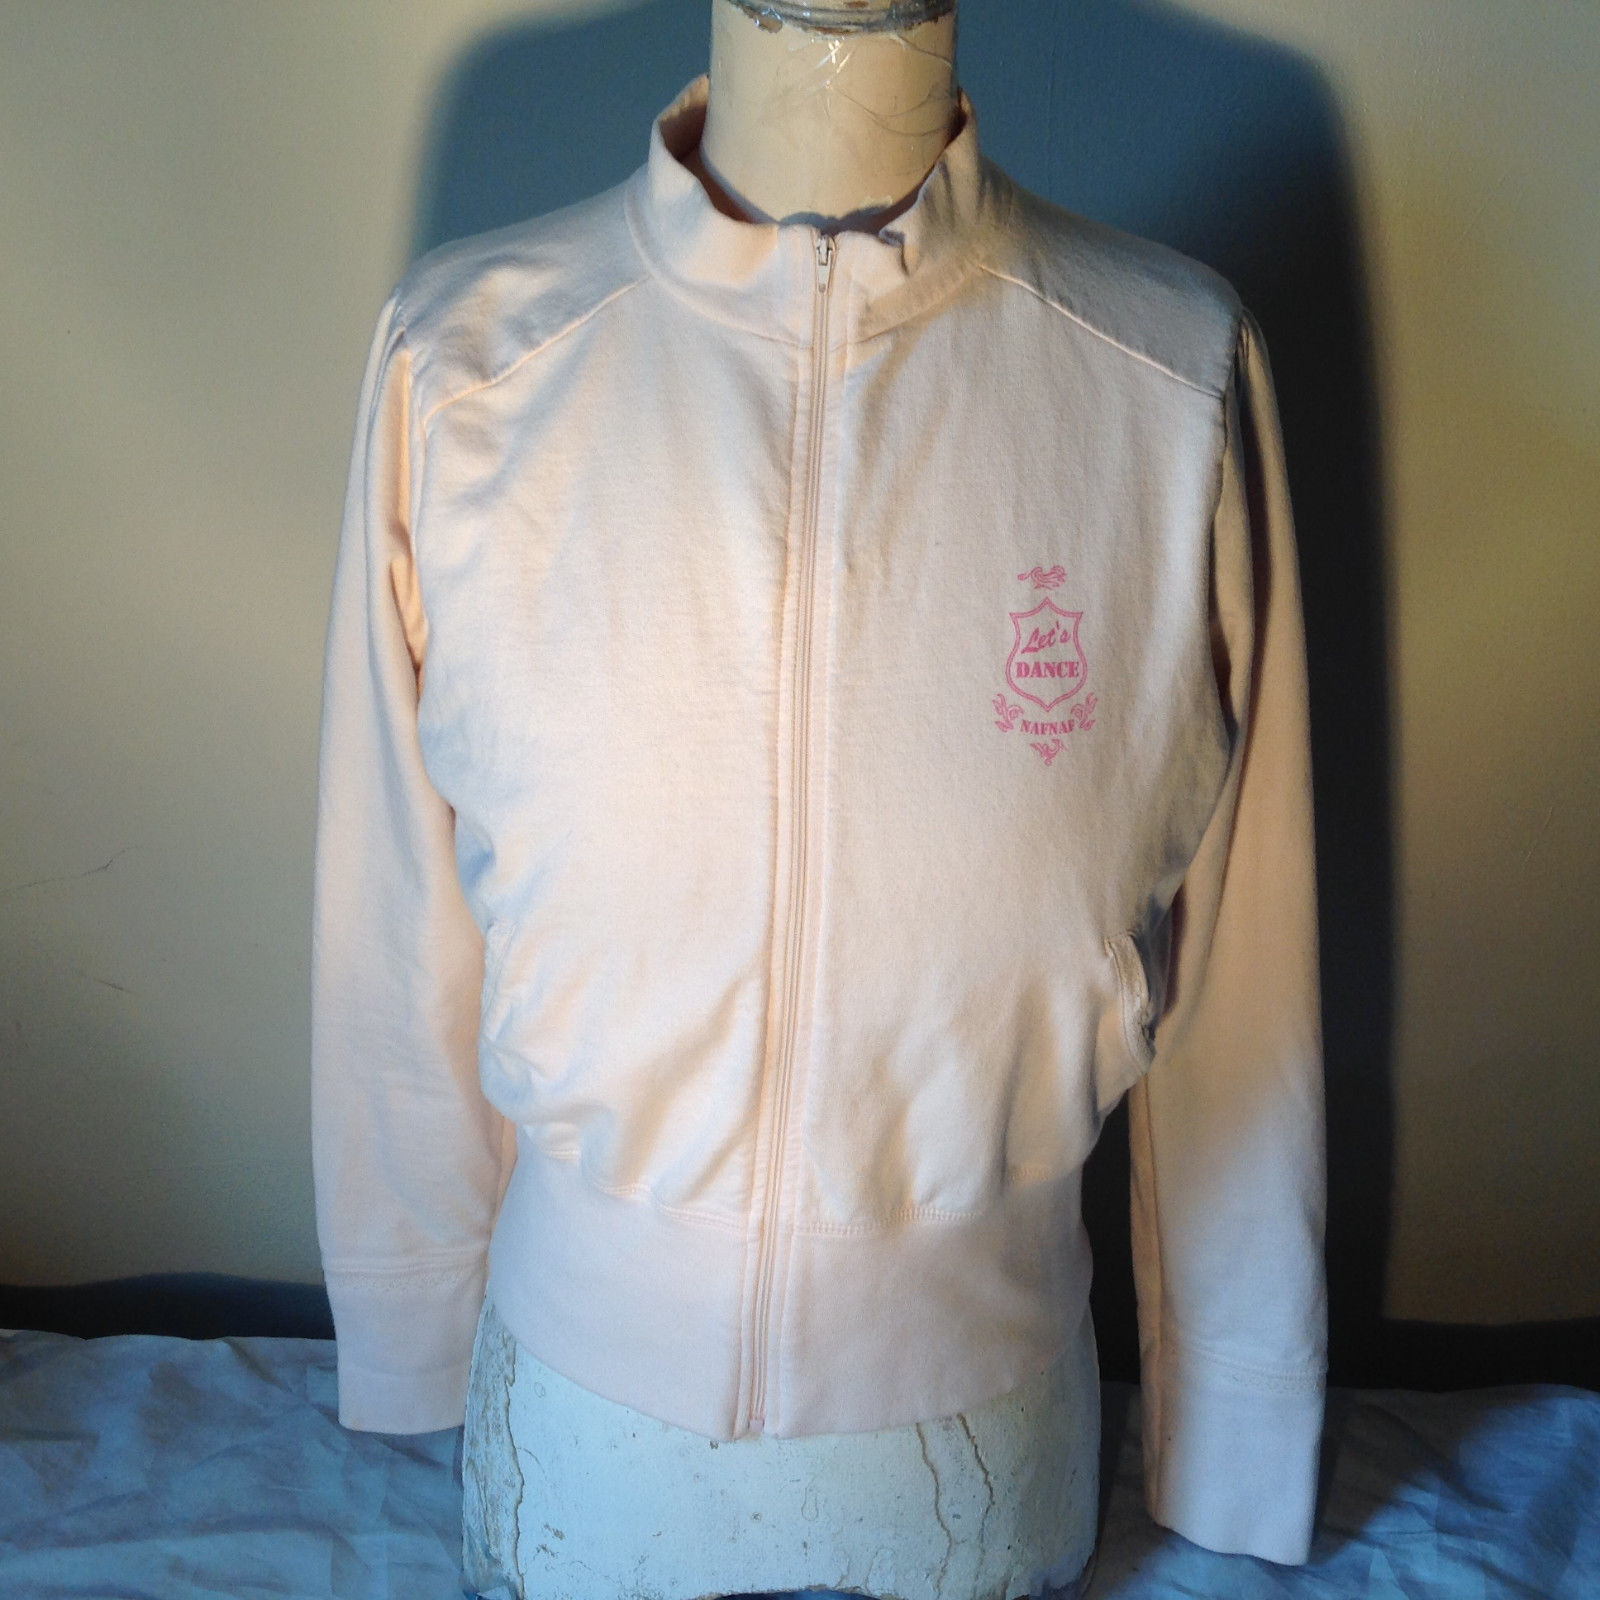 Light Pink Sweatshirt Zip Up Long Sleeve NAFNAF Lets Dance N on Back Size Large